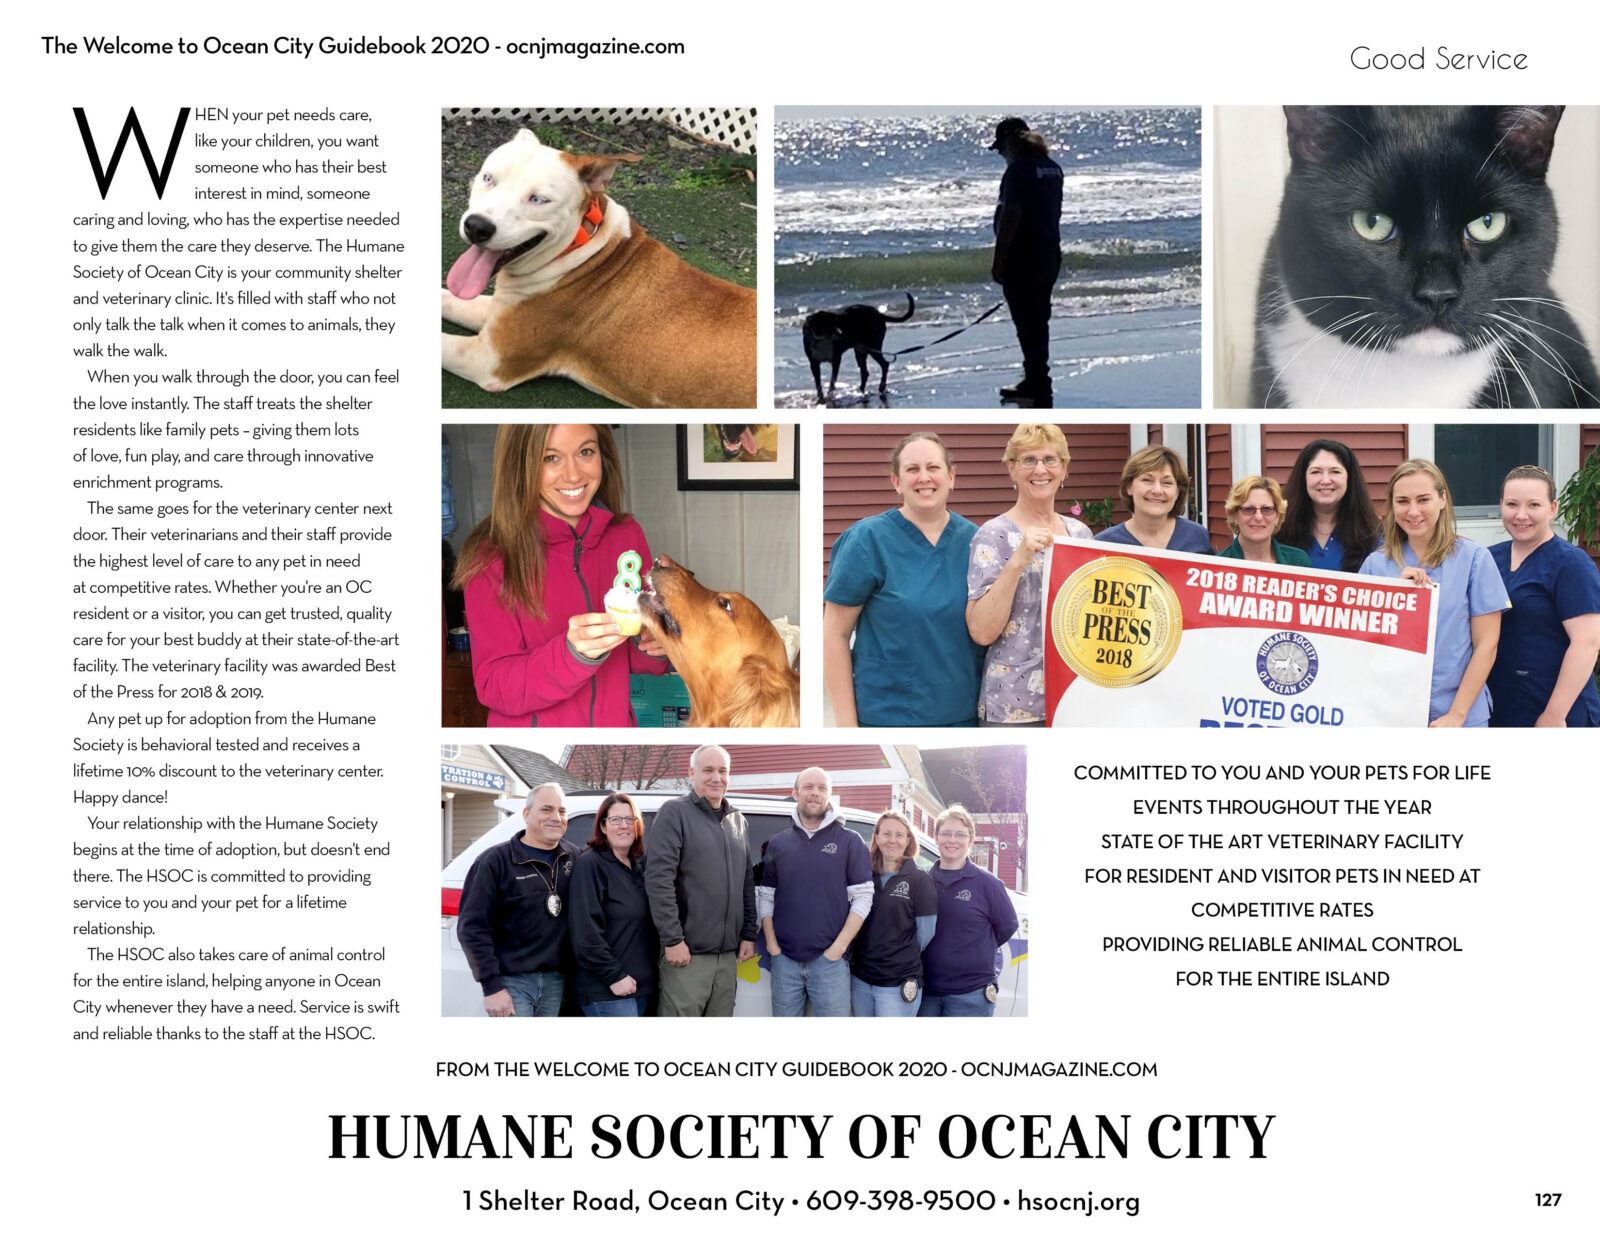 The Humane Society of Ocean CIty